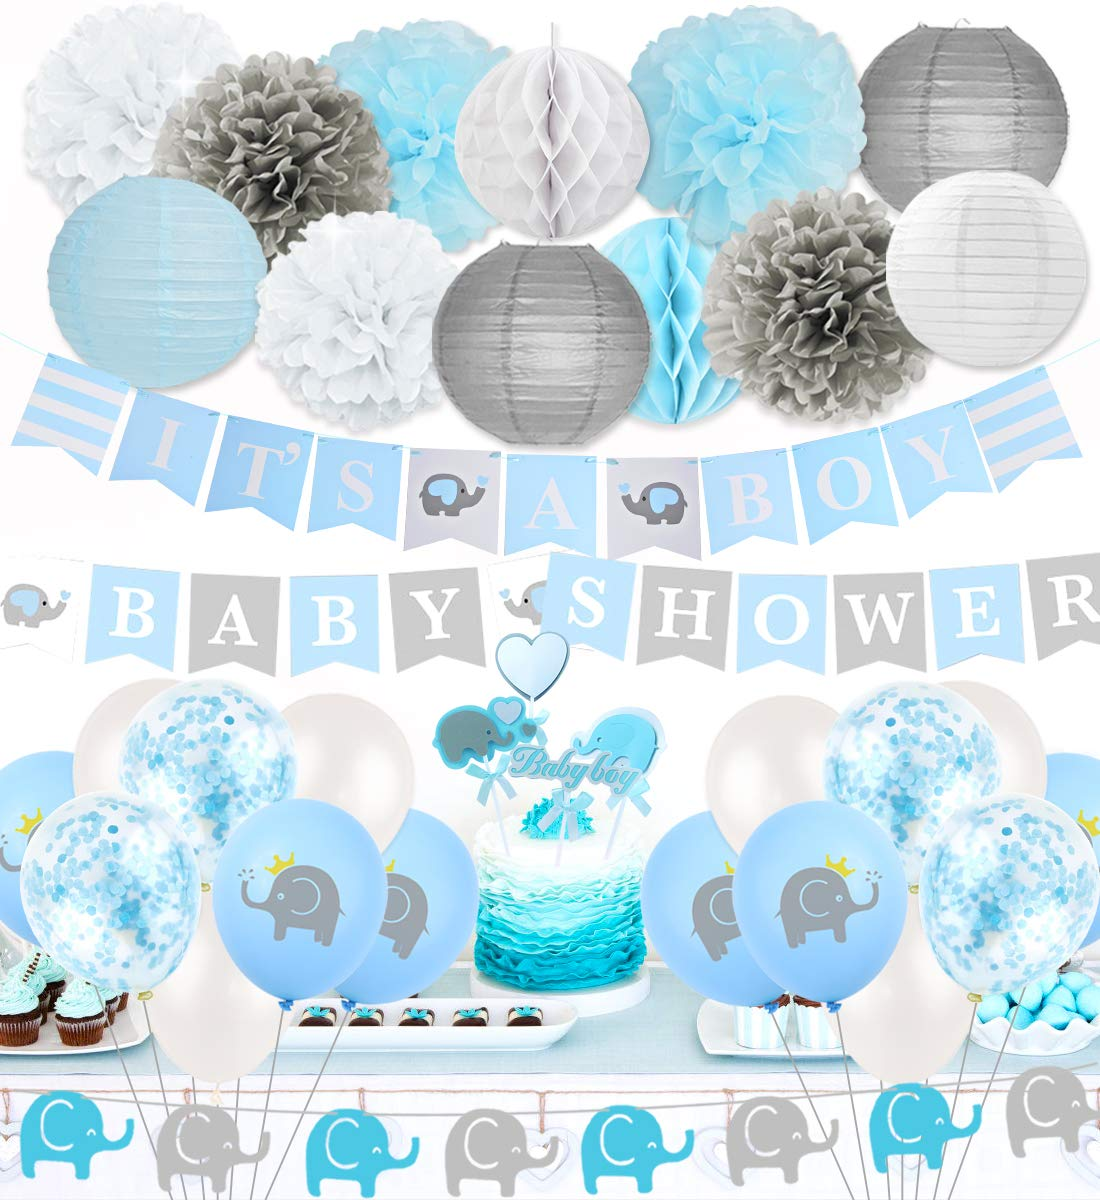 Elephant Baby Shower Decorations Little Peanut Baby Shower Party Supplies Blue with IT' s A Boy Banner Baby Shower Letter Banner and Cake Toppers by Kreatwow